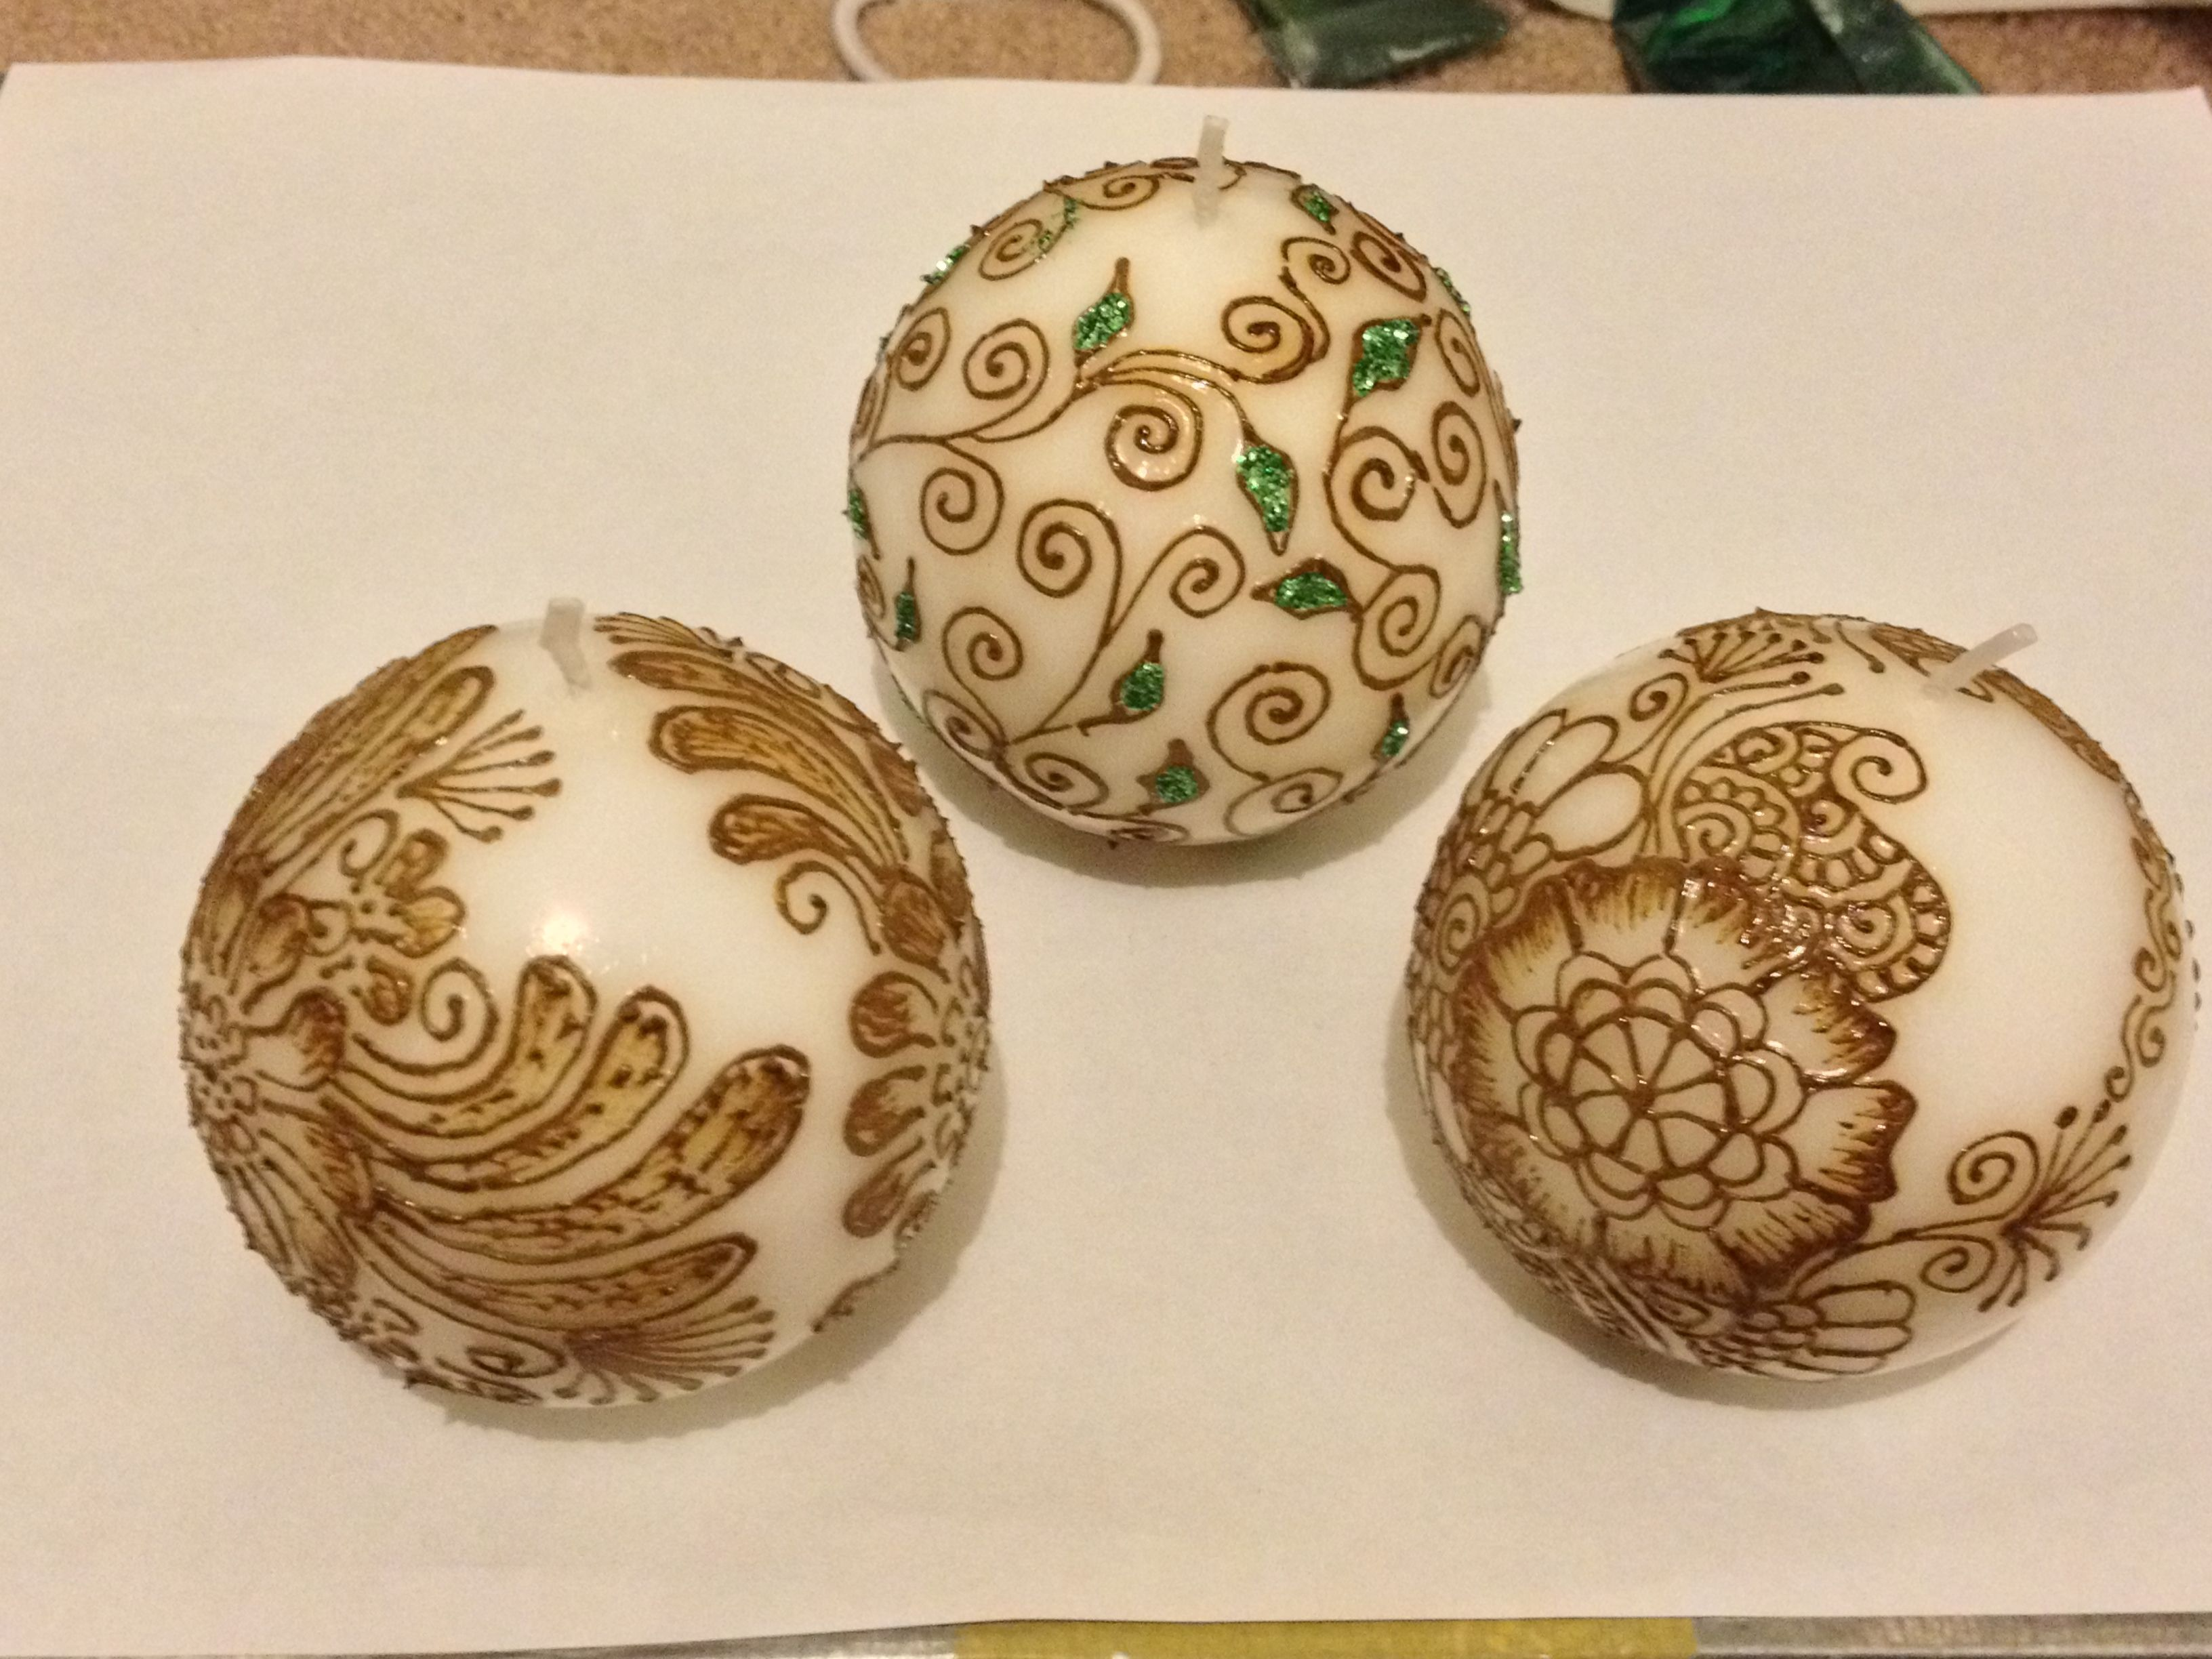 Round henna candles for decoration  and  gifts...